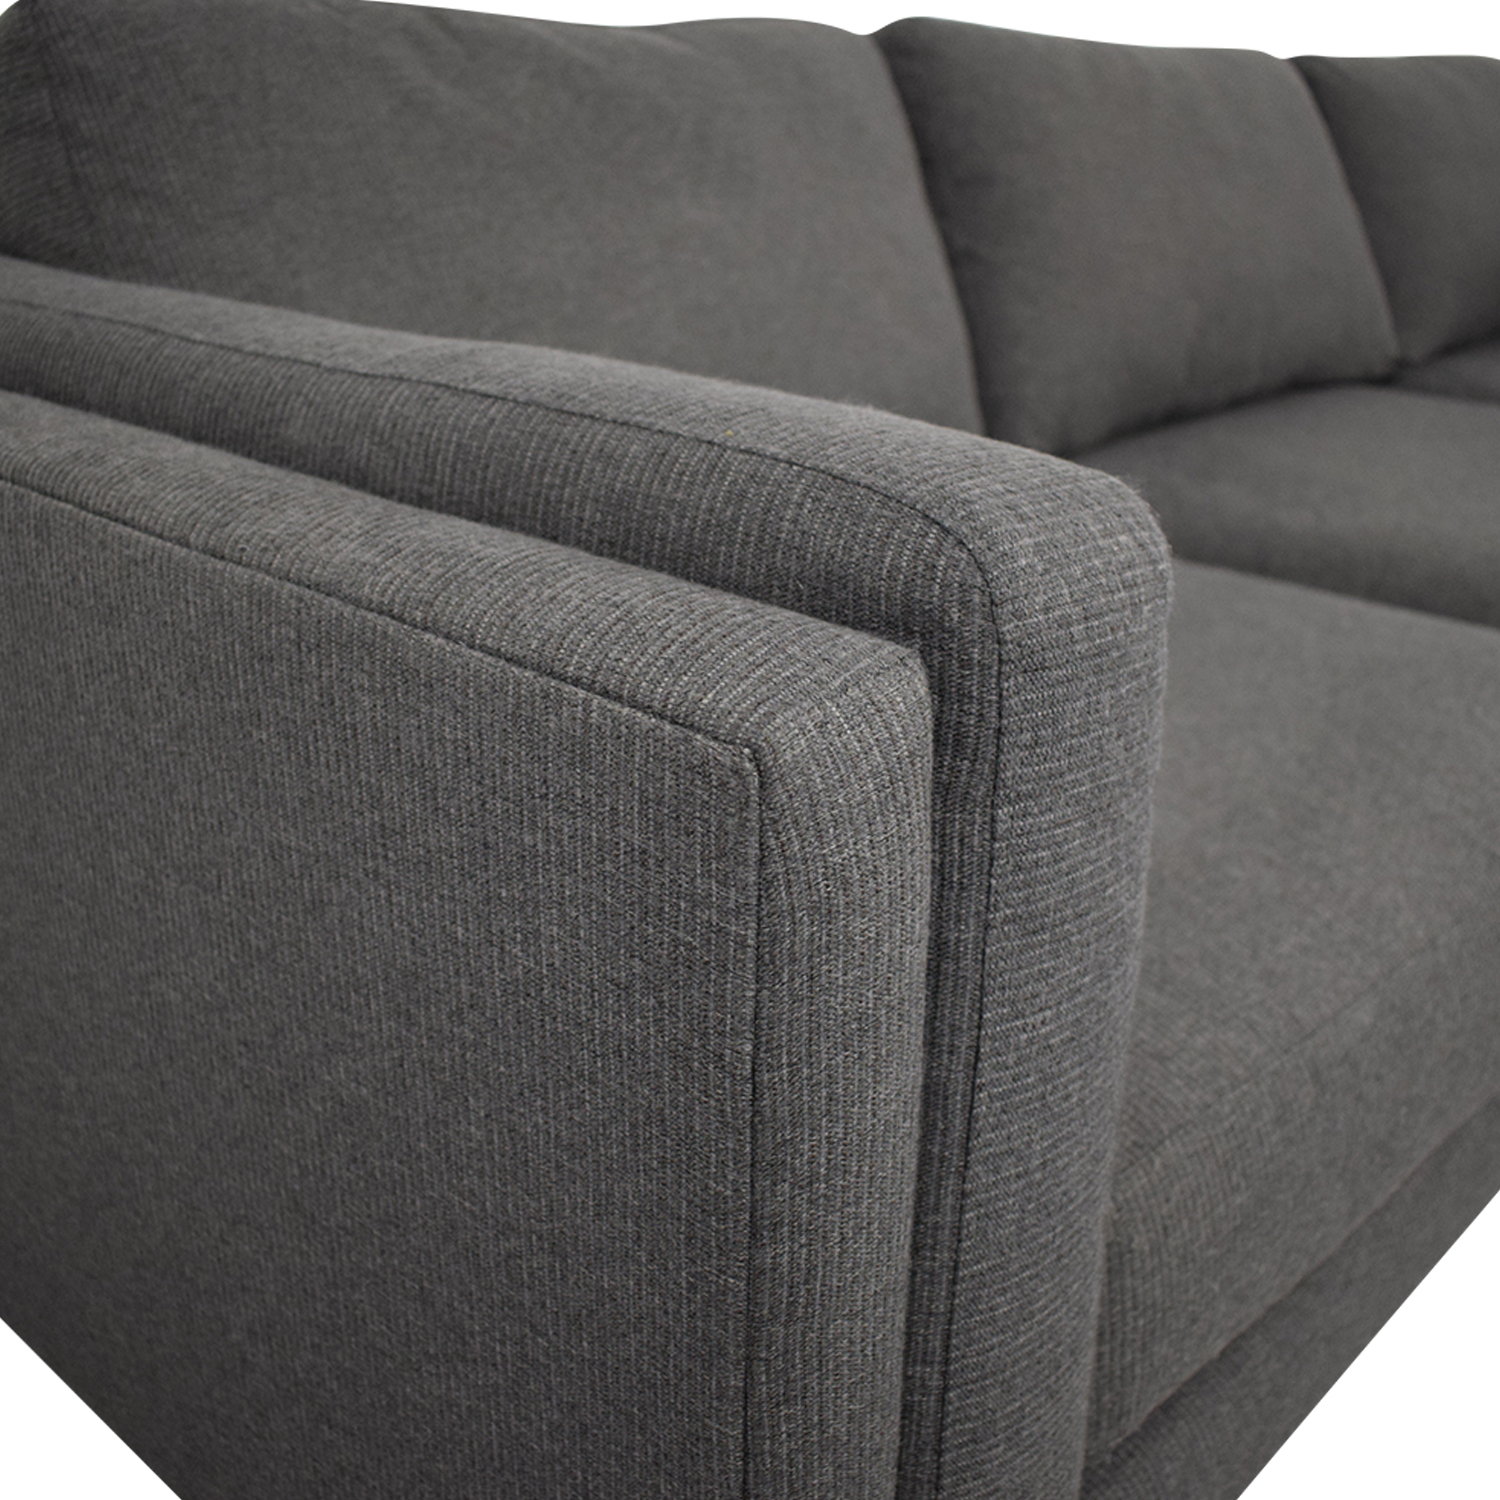 buy Room & Board Room & Board Holden Sofa with Right-Arm Chaise online